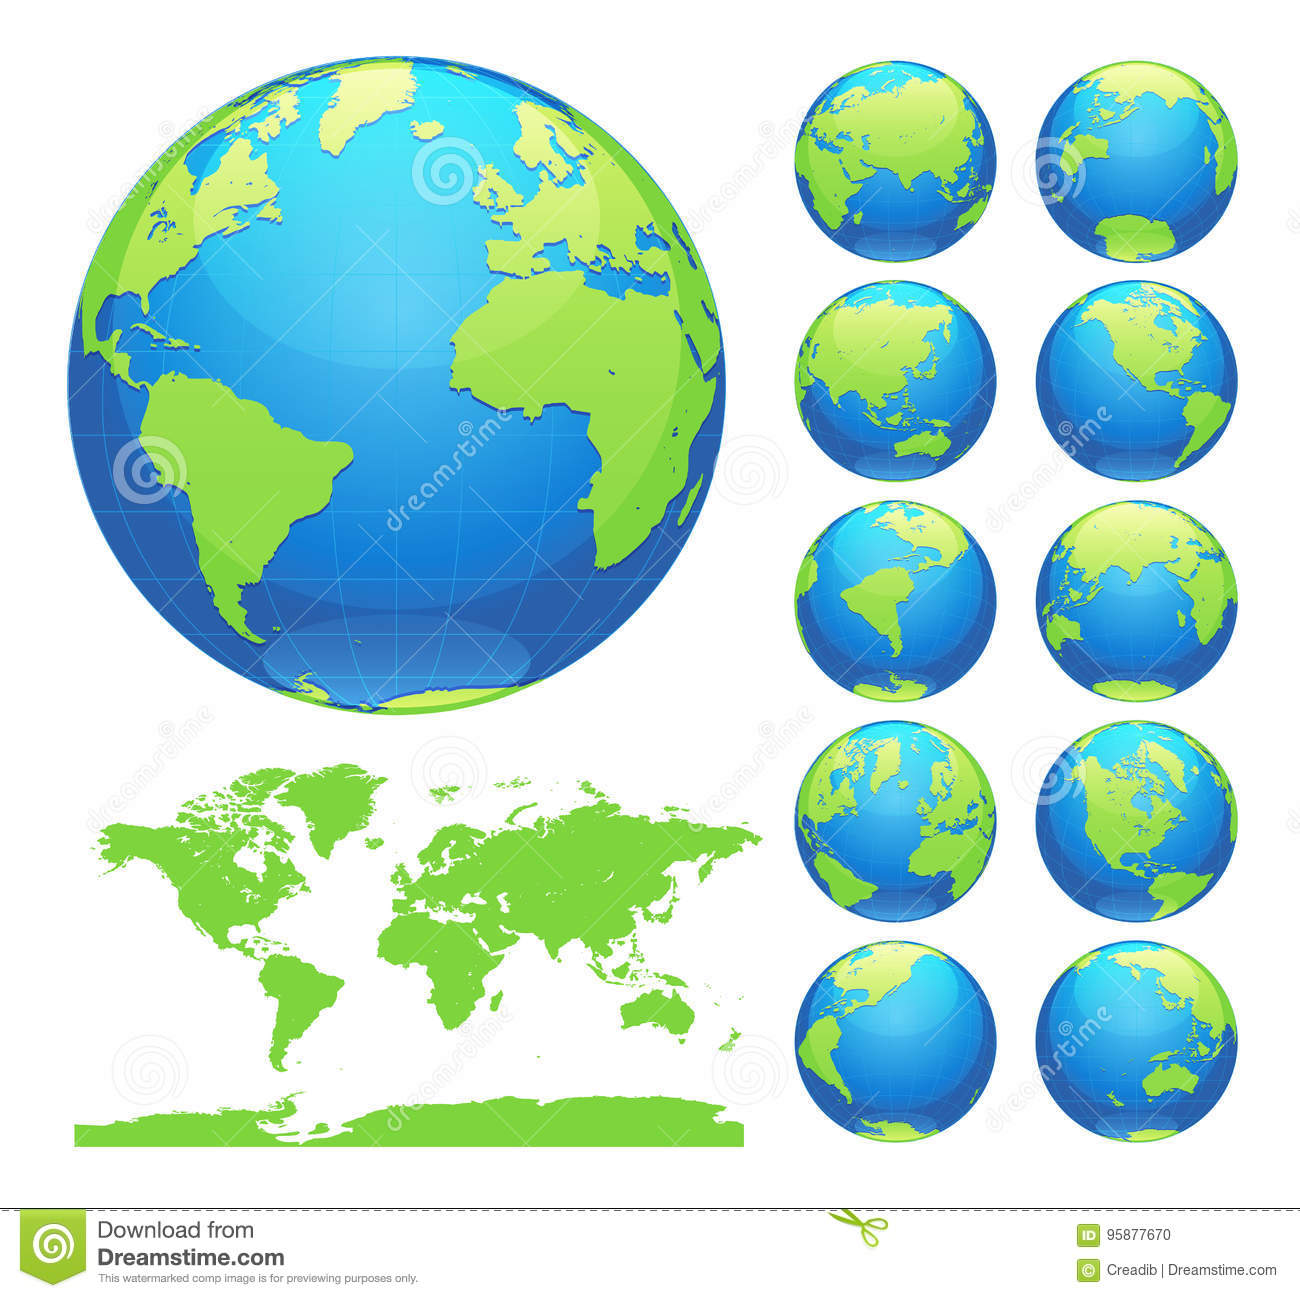 Globes showing earth with all continents digital world globe vector globes showing earth with all continents digital world globe vector dotted world map vector collection asia gumiabroncs Gallery